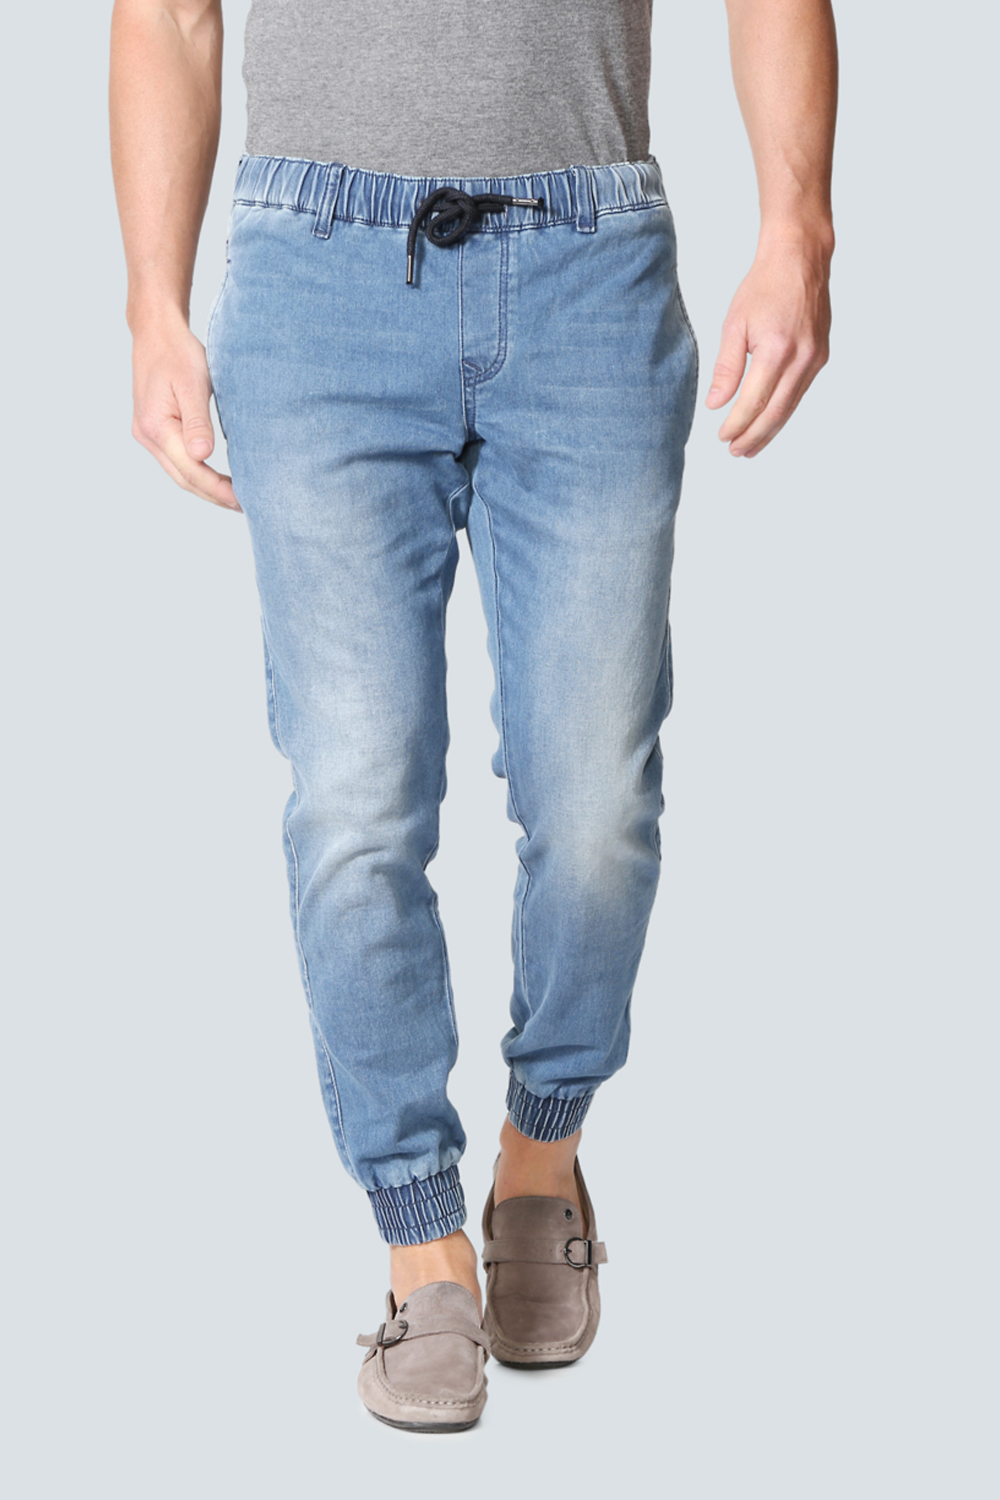 pretty nice e0adf 516f8 LP Jeans Jeans, Louis Philippe Blue Jogger Jeans for Men at  Louisphilippe.com